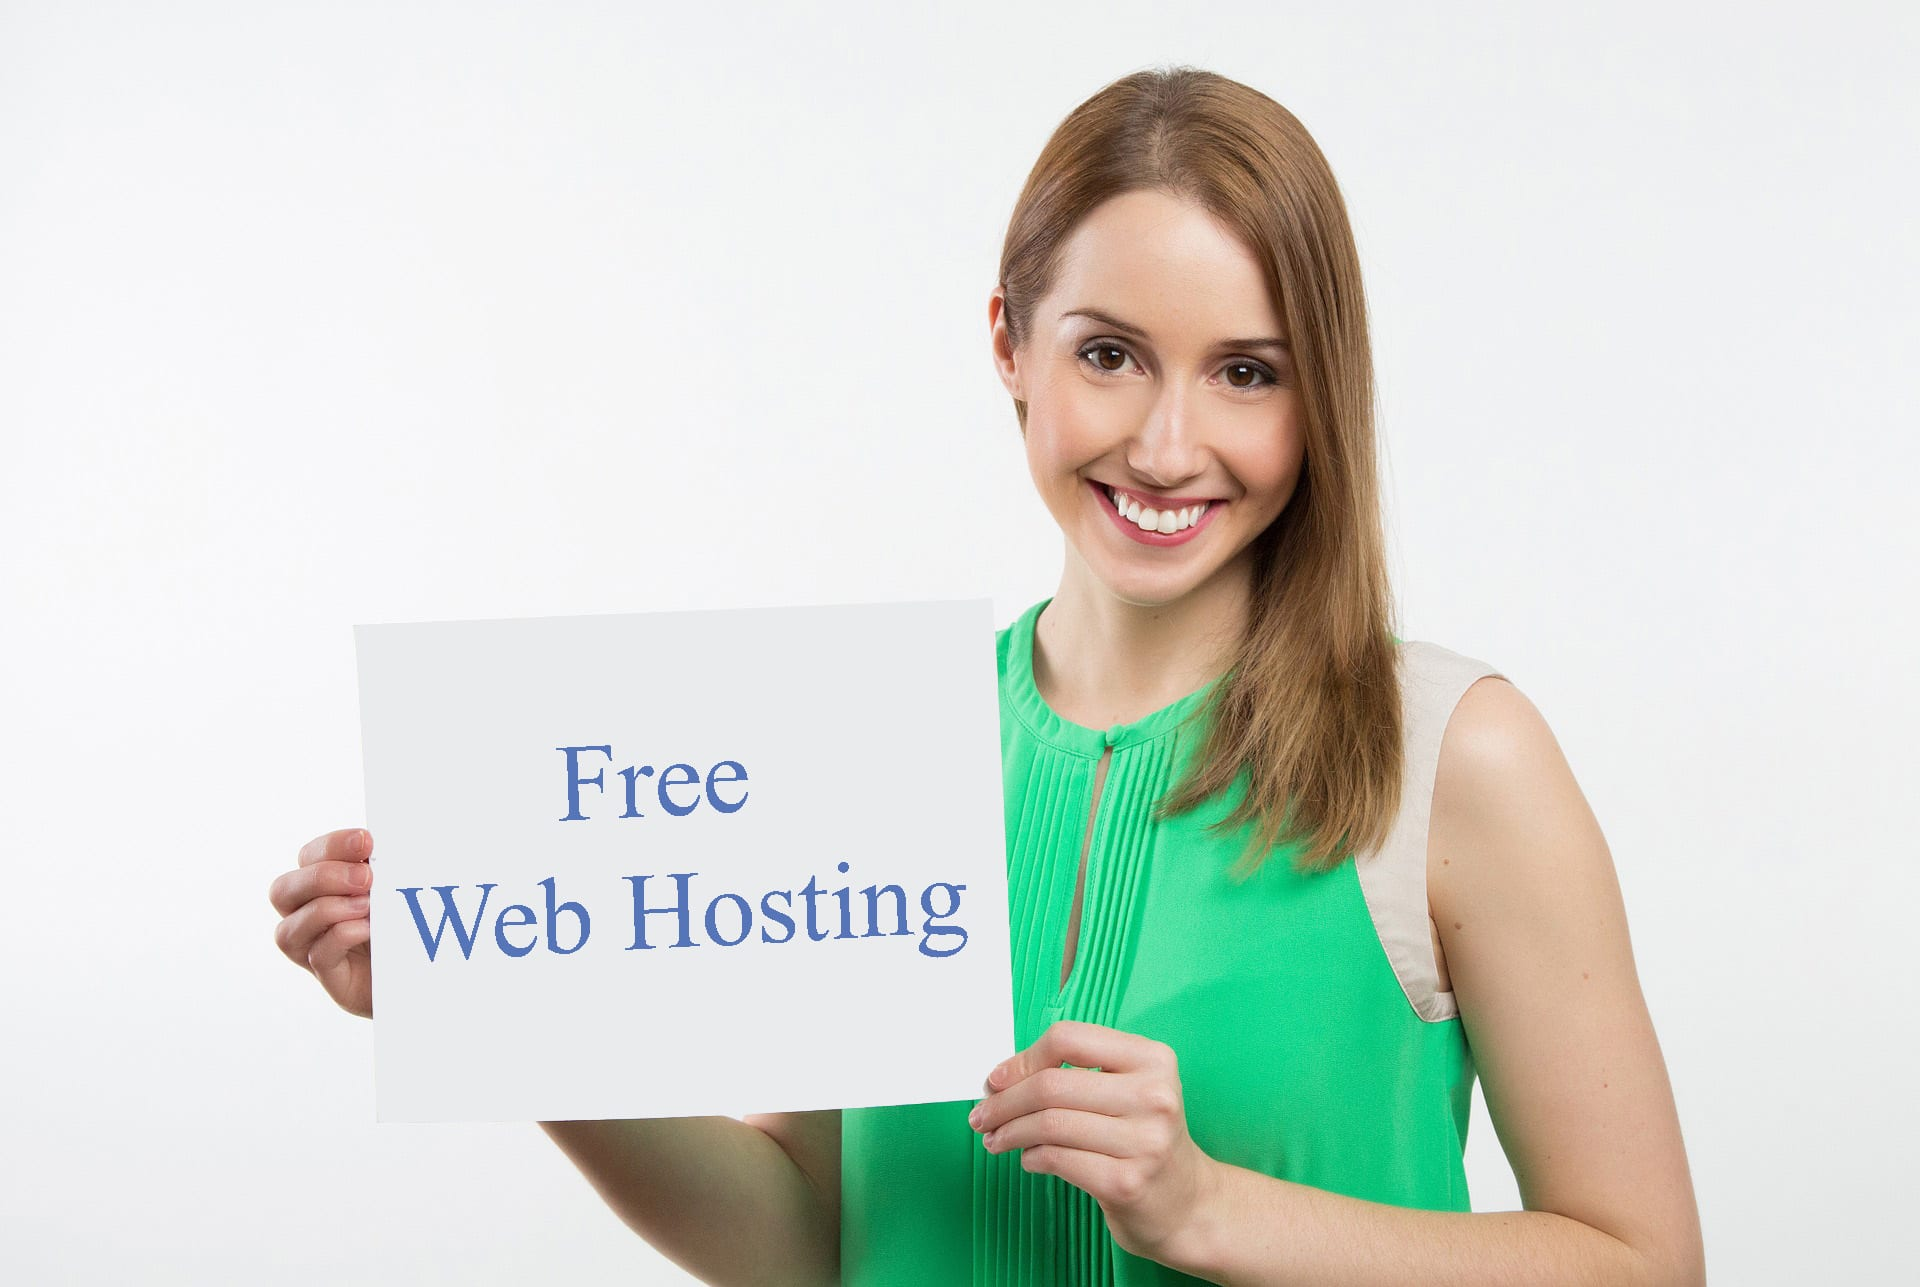 7 Free Web Hosting Sites